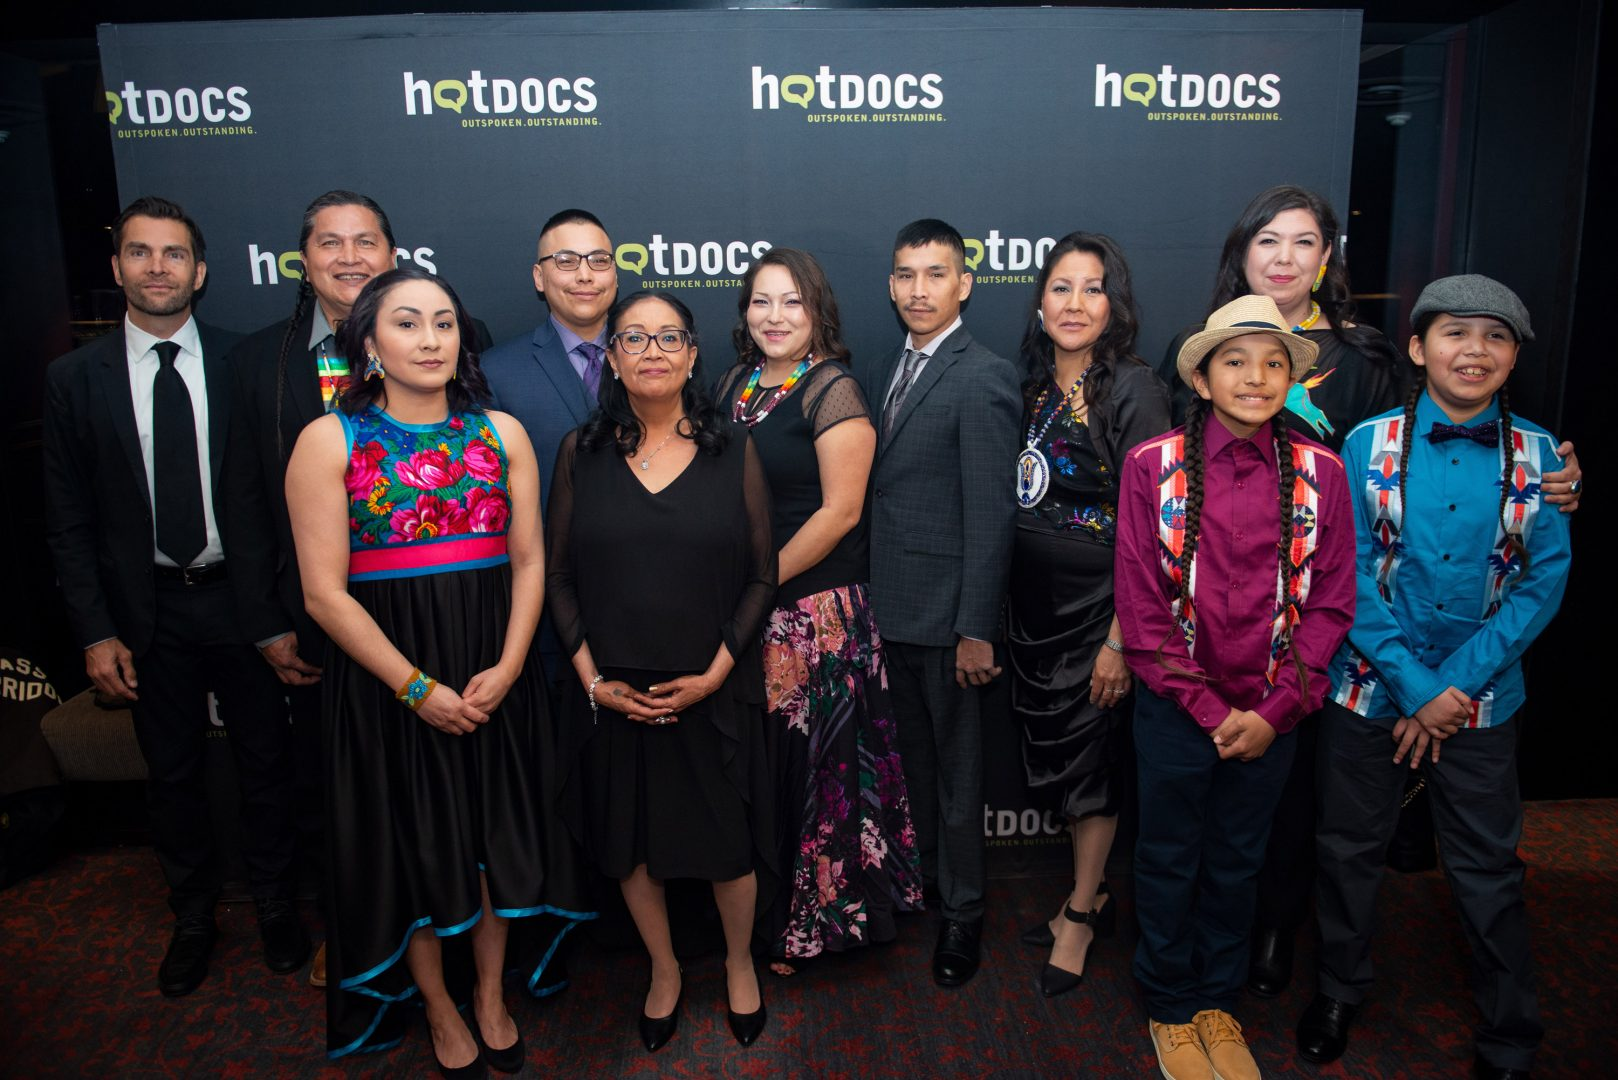 Tasha Hubbard (back row, first from the right) with Colten Boushie's family on opening night at the Hot Docs Film Festival. (Photo by Joseph Michael Howarth, courtesy of Hot Docs)